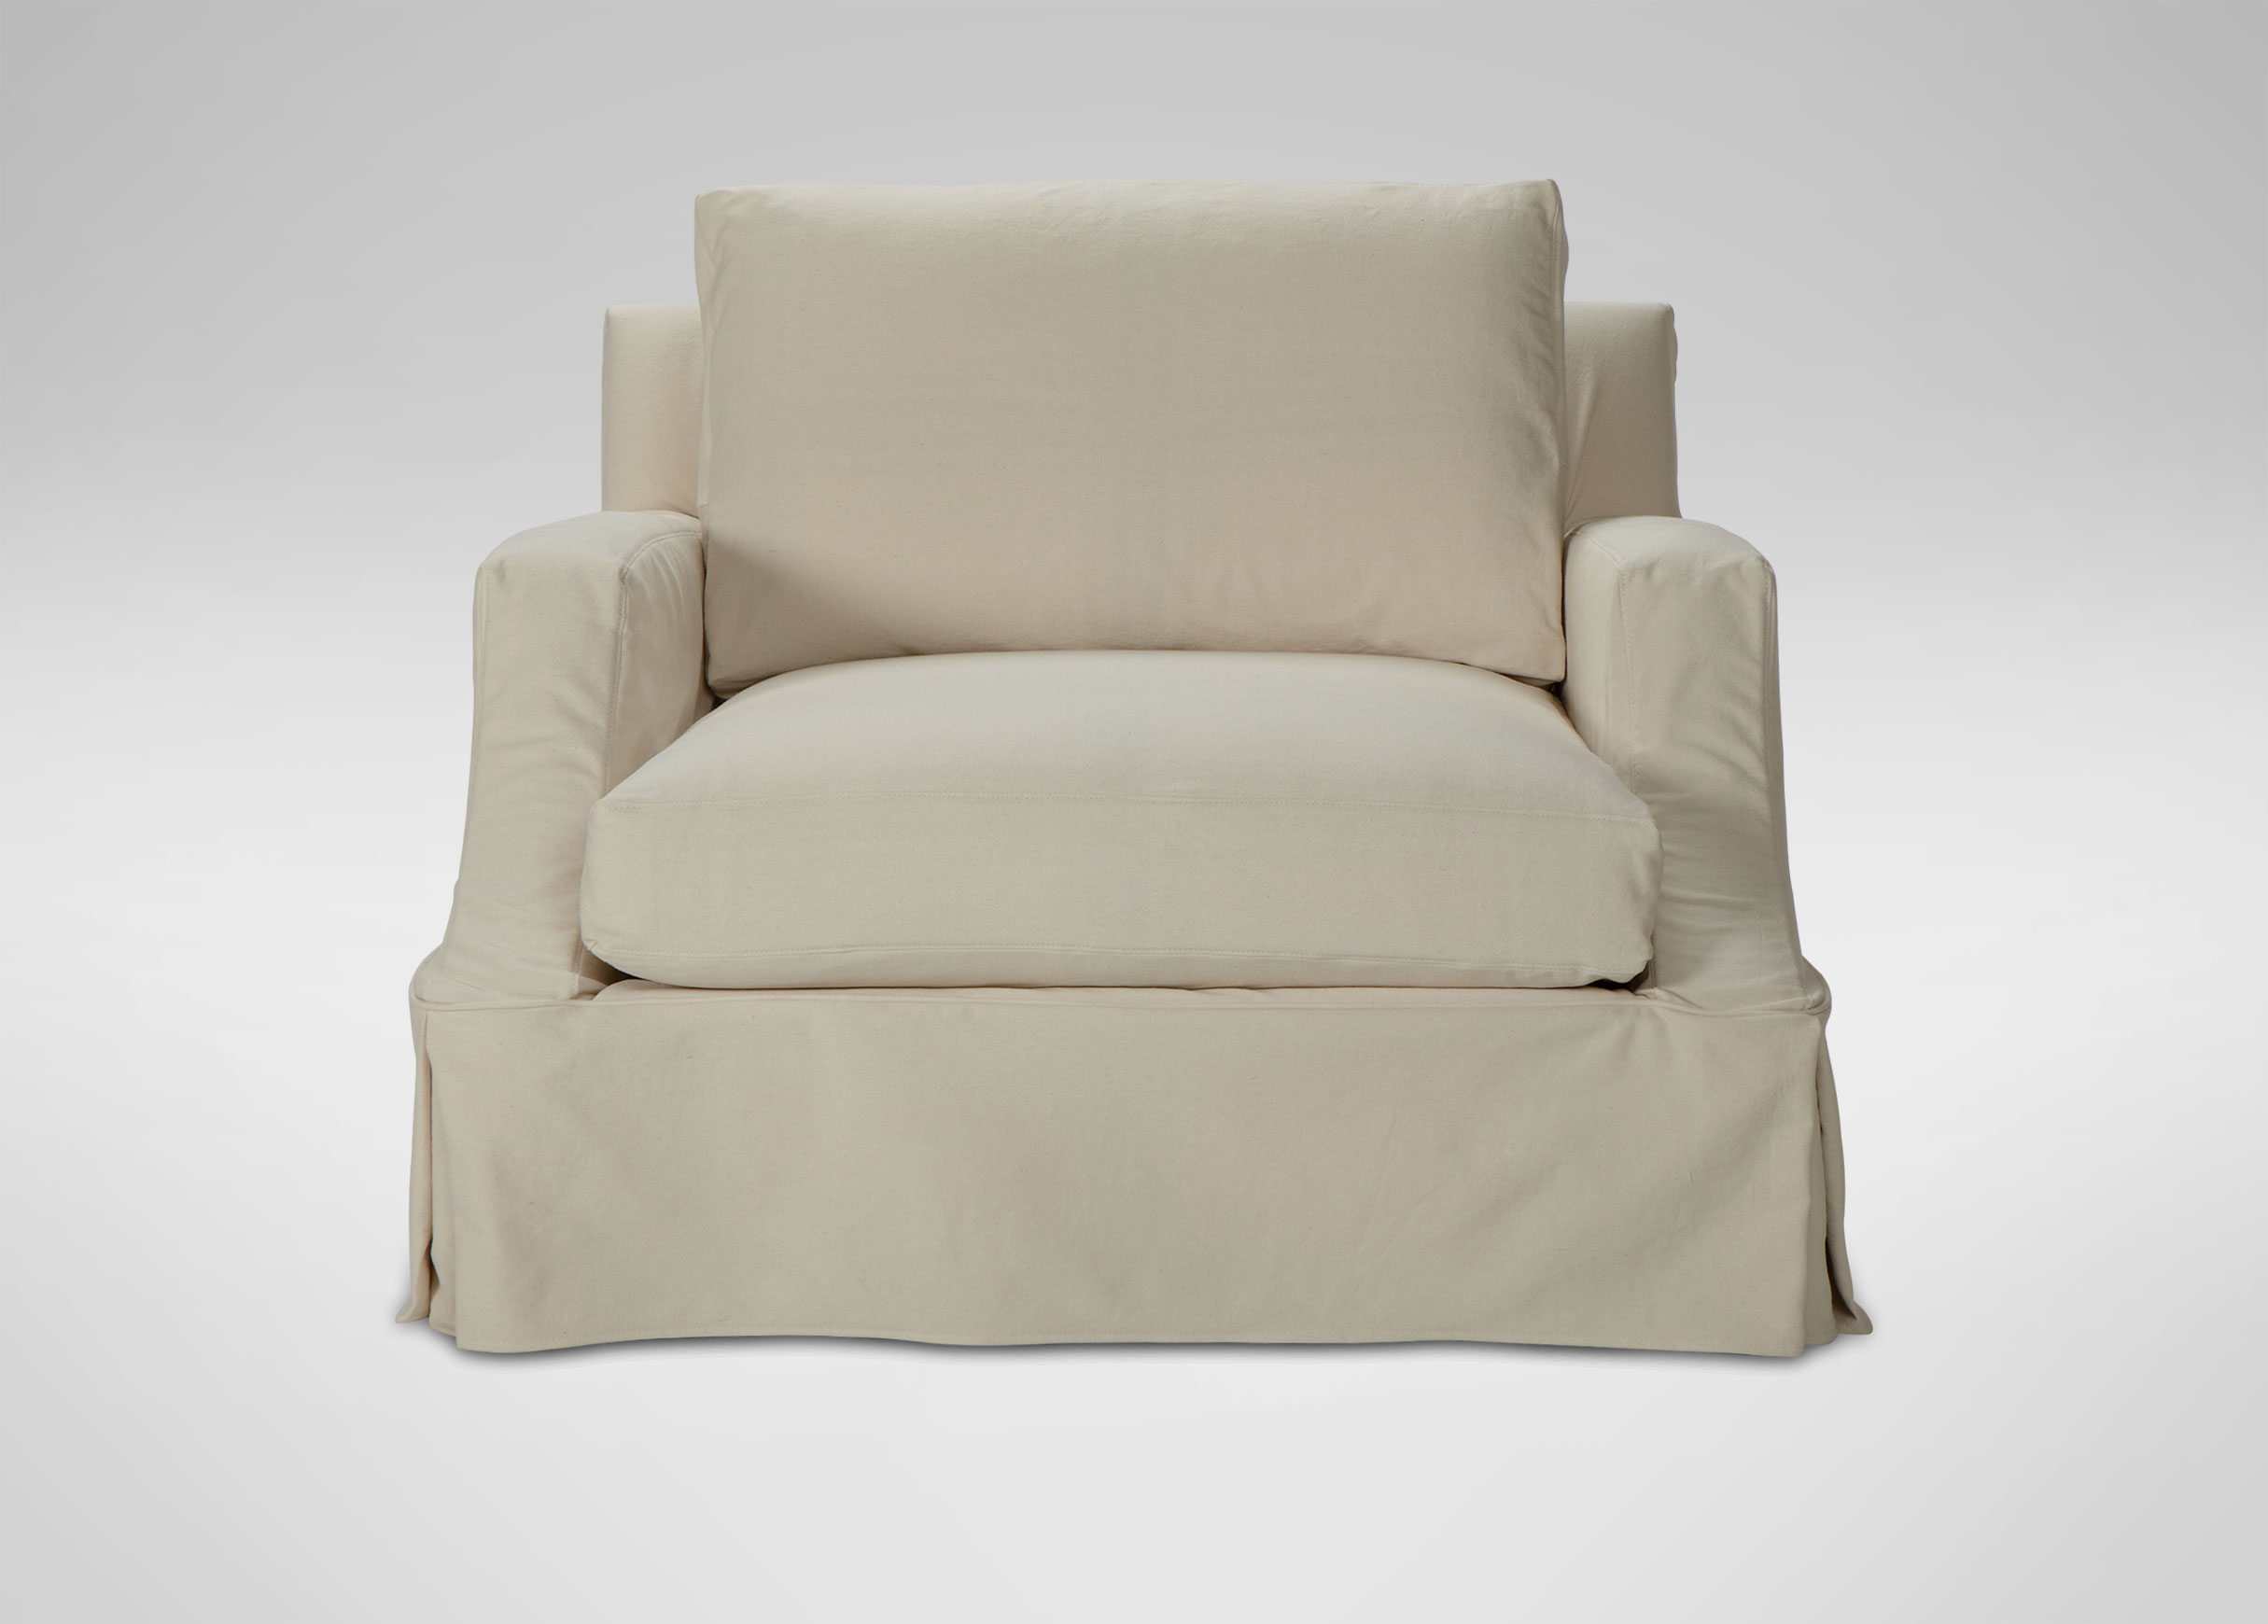 Slipcovered Sofas Clearance Ethan Allen Slipcovers Couches